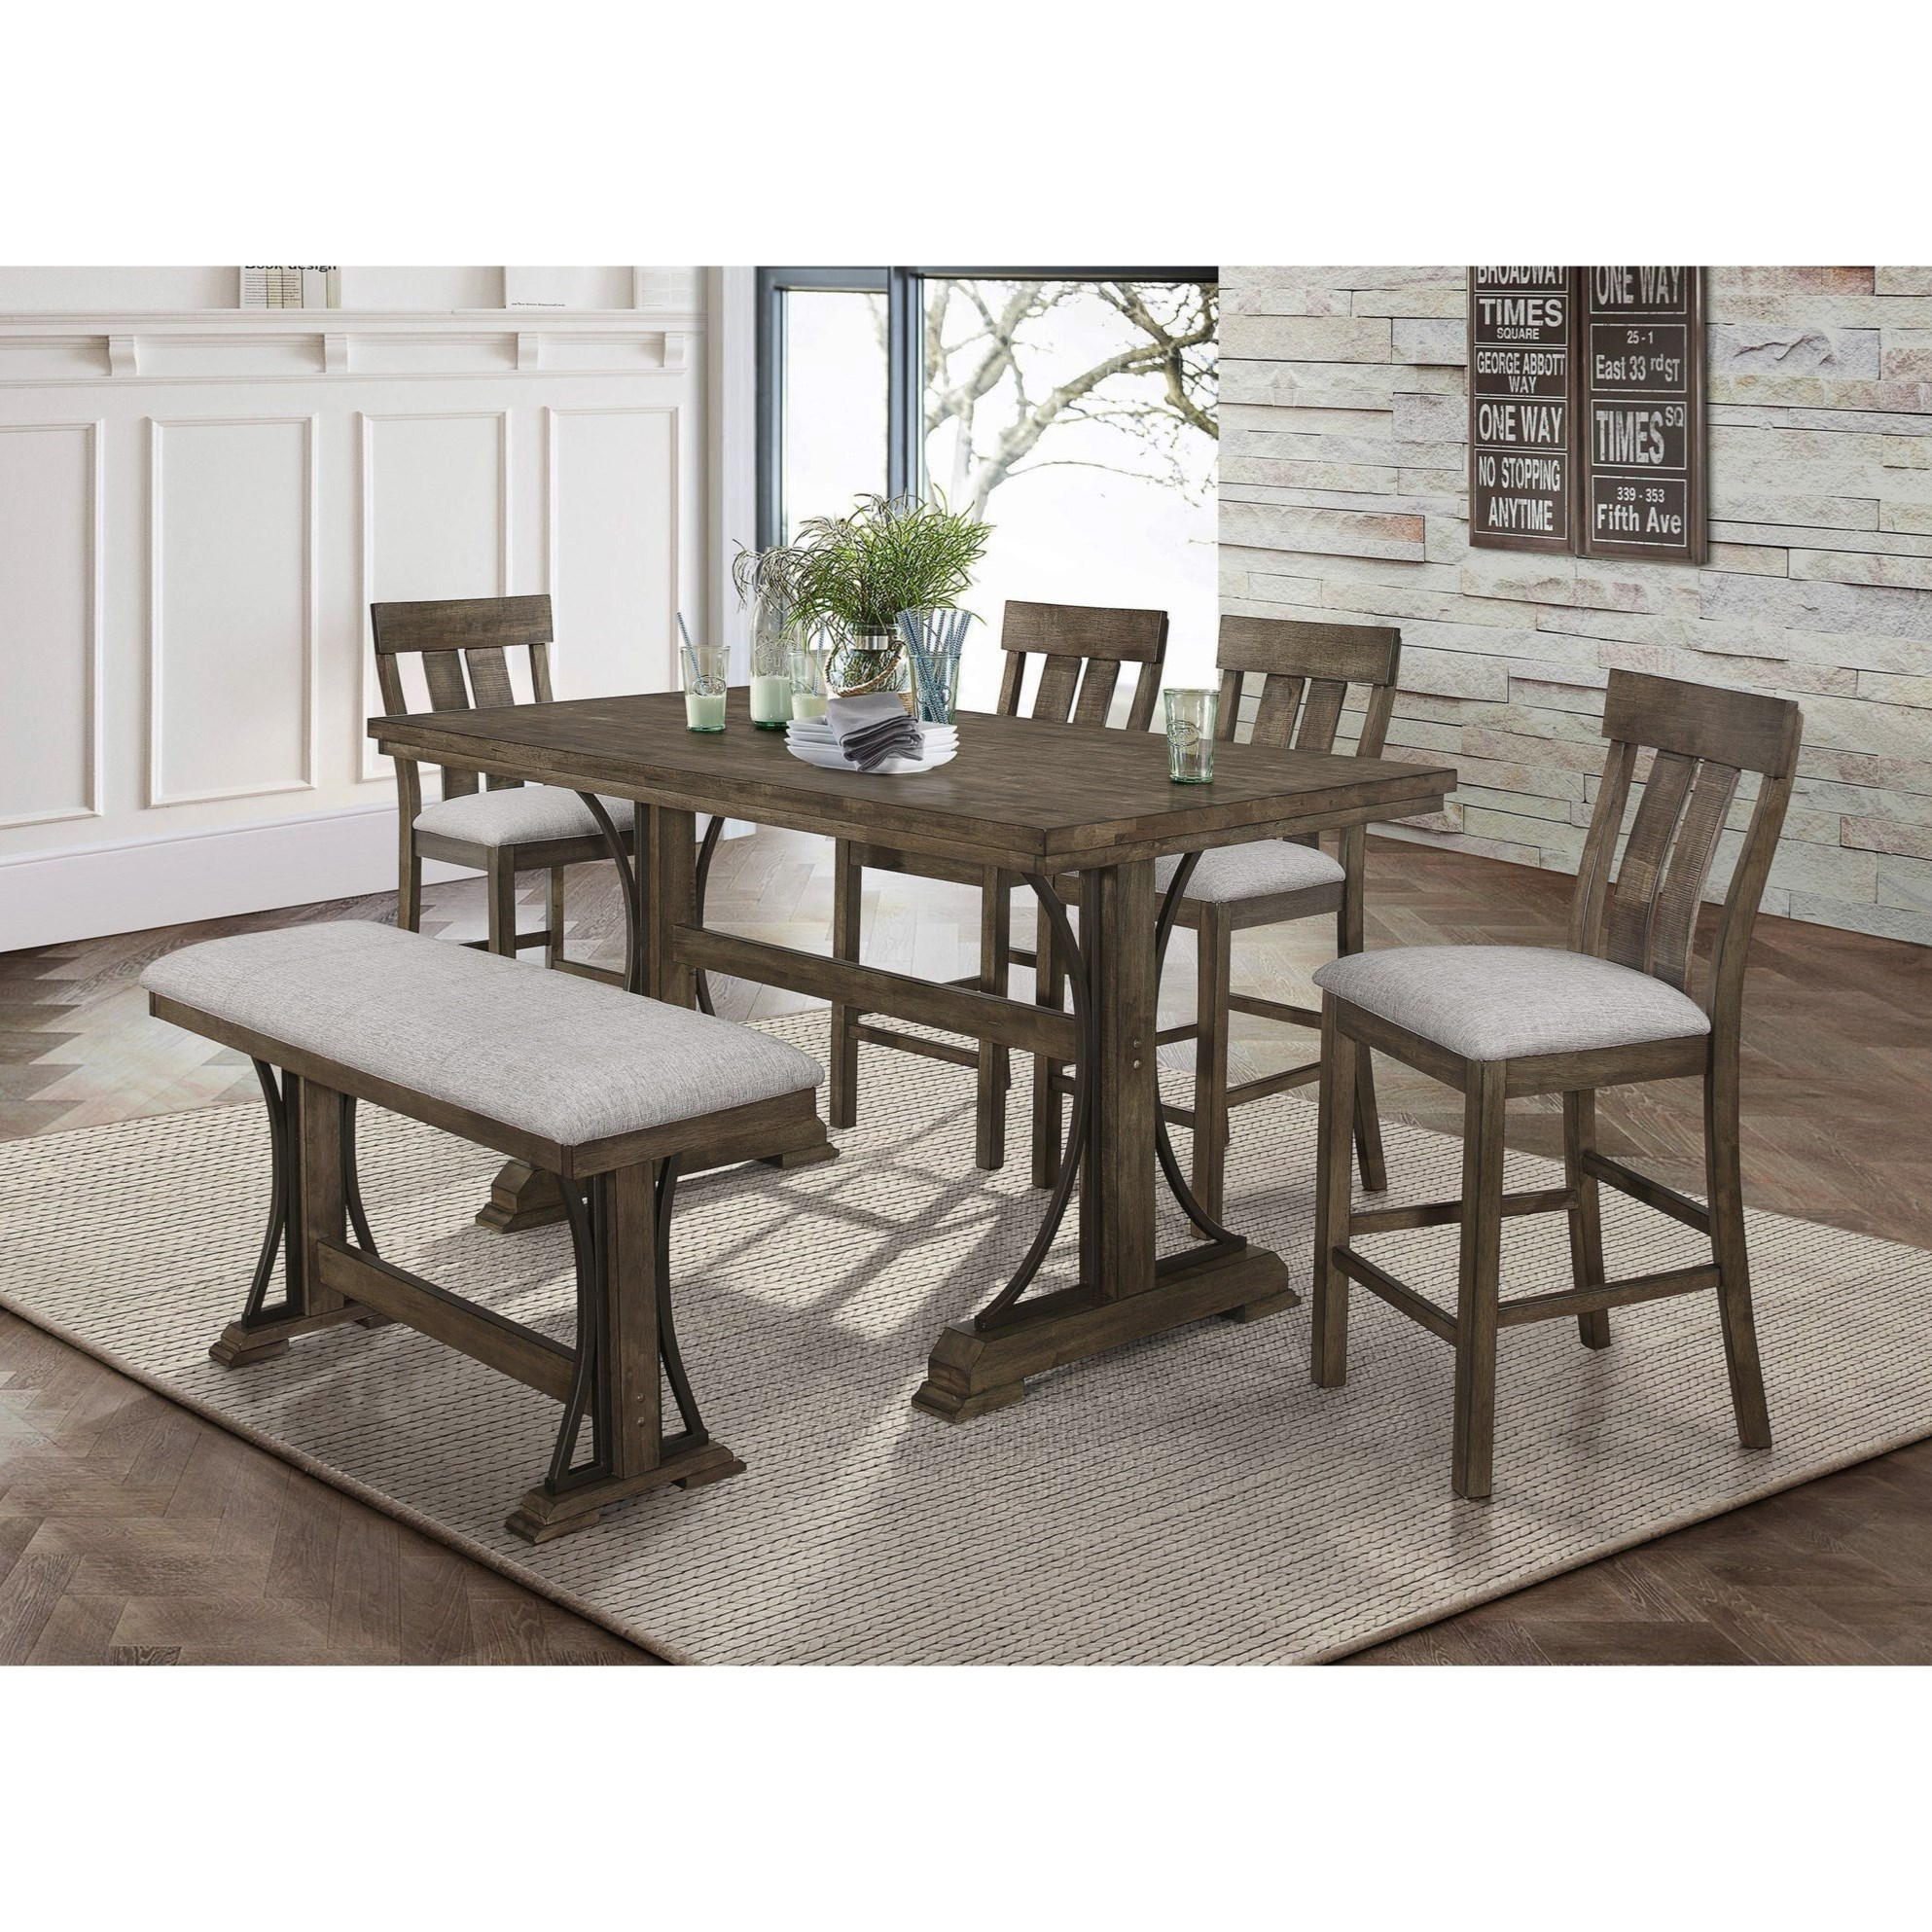 Quincy Counter Height Table Set by Crown Mark at Bullard Furniture